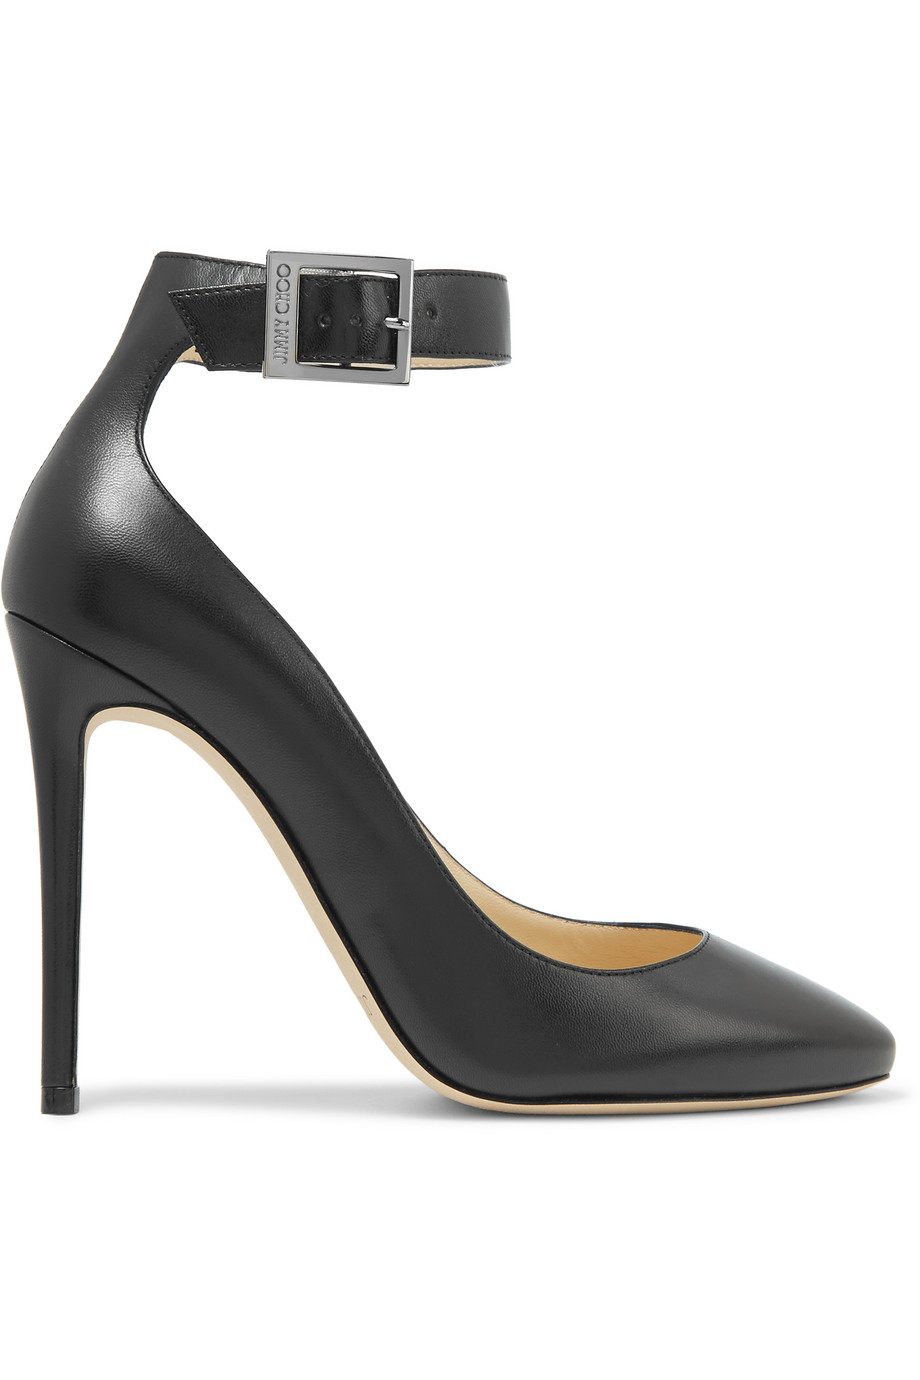 Jimmy Choo Helena Leather Pumps, Black, Women's US Size: 3.5, Size: 34